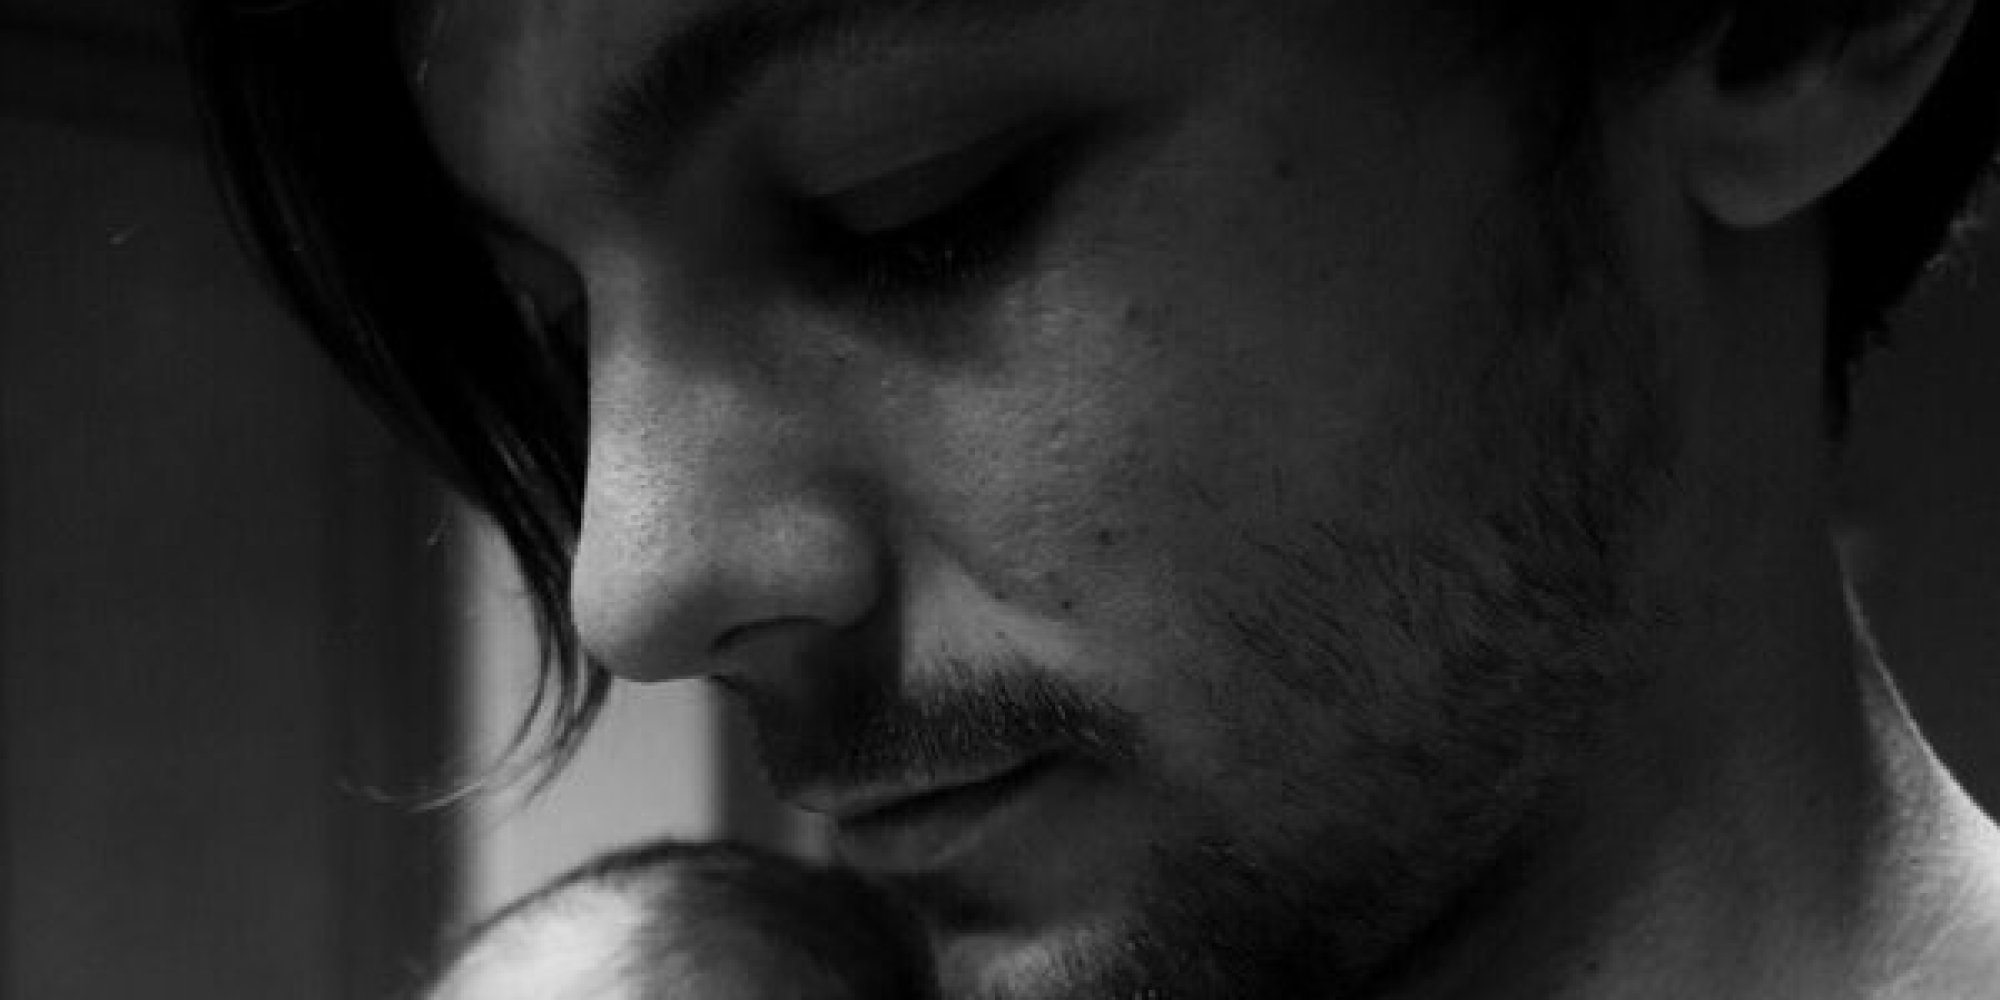 Louis Tomlinson Facebook: Louis Tomlinson Reveals Baby Name Choice And Shares